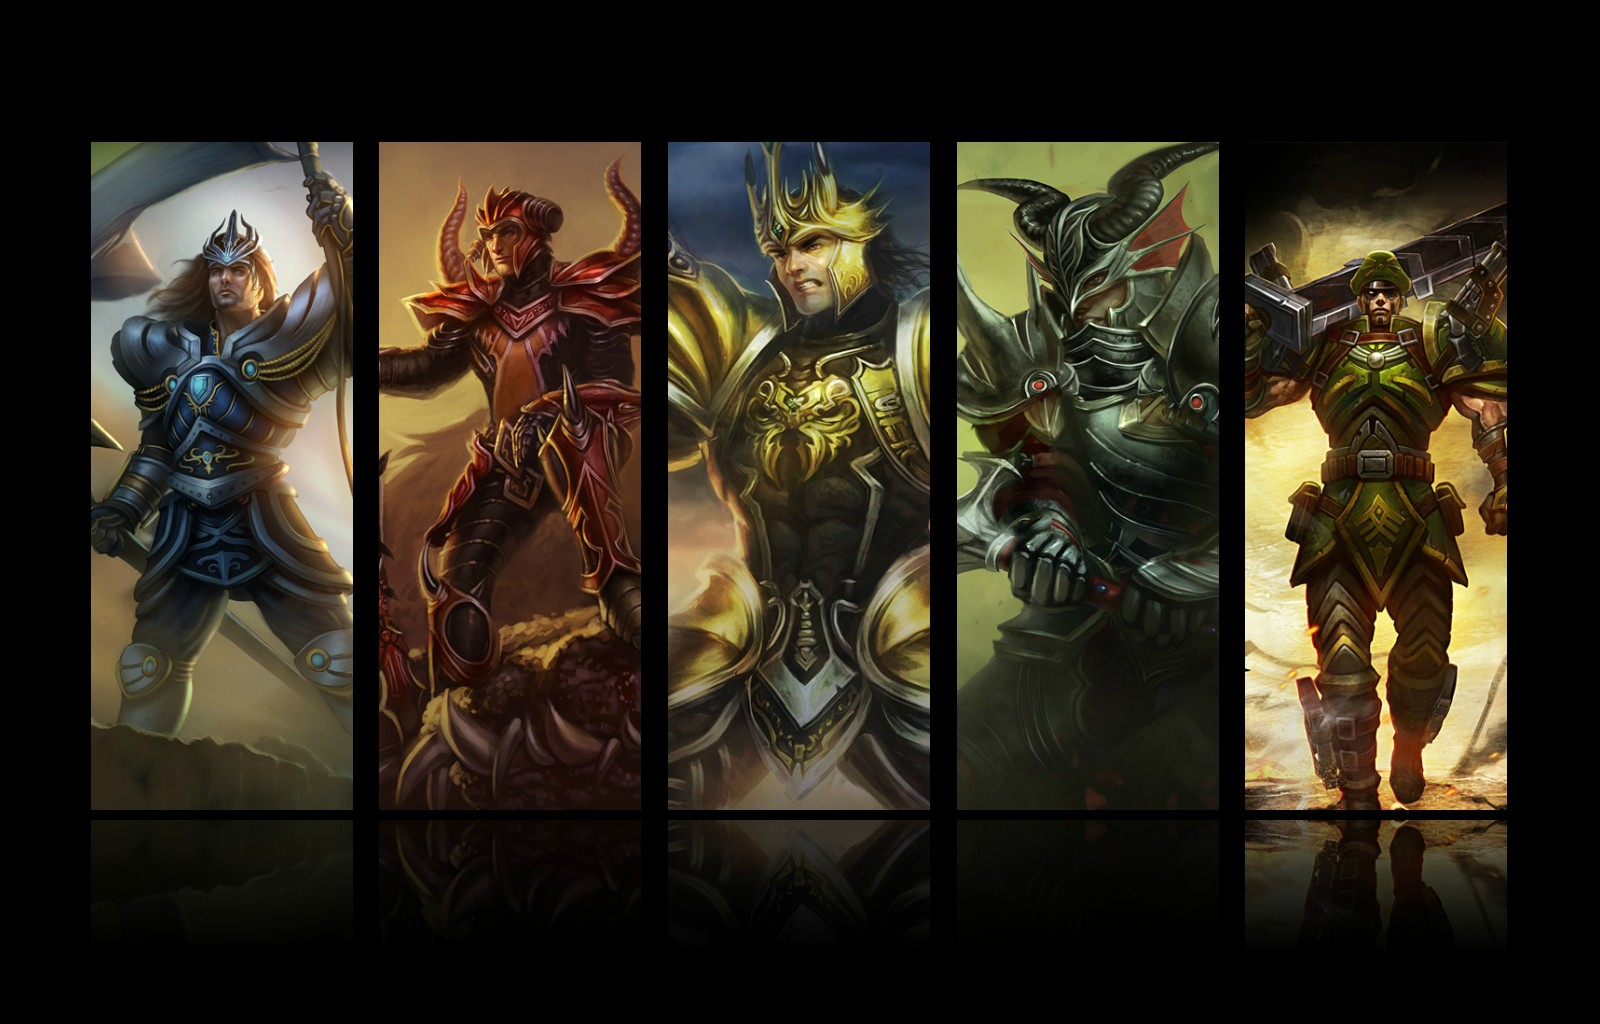 League of legends wallpaper and background image - Wallpaper 1600x1024 ...